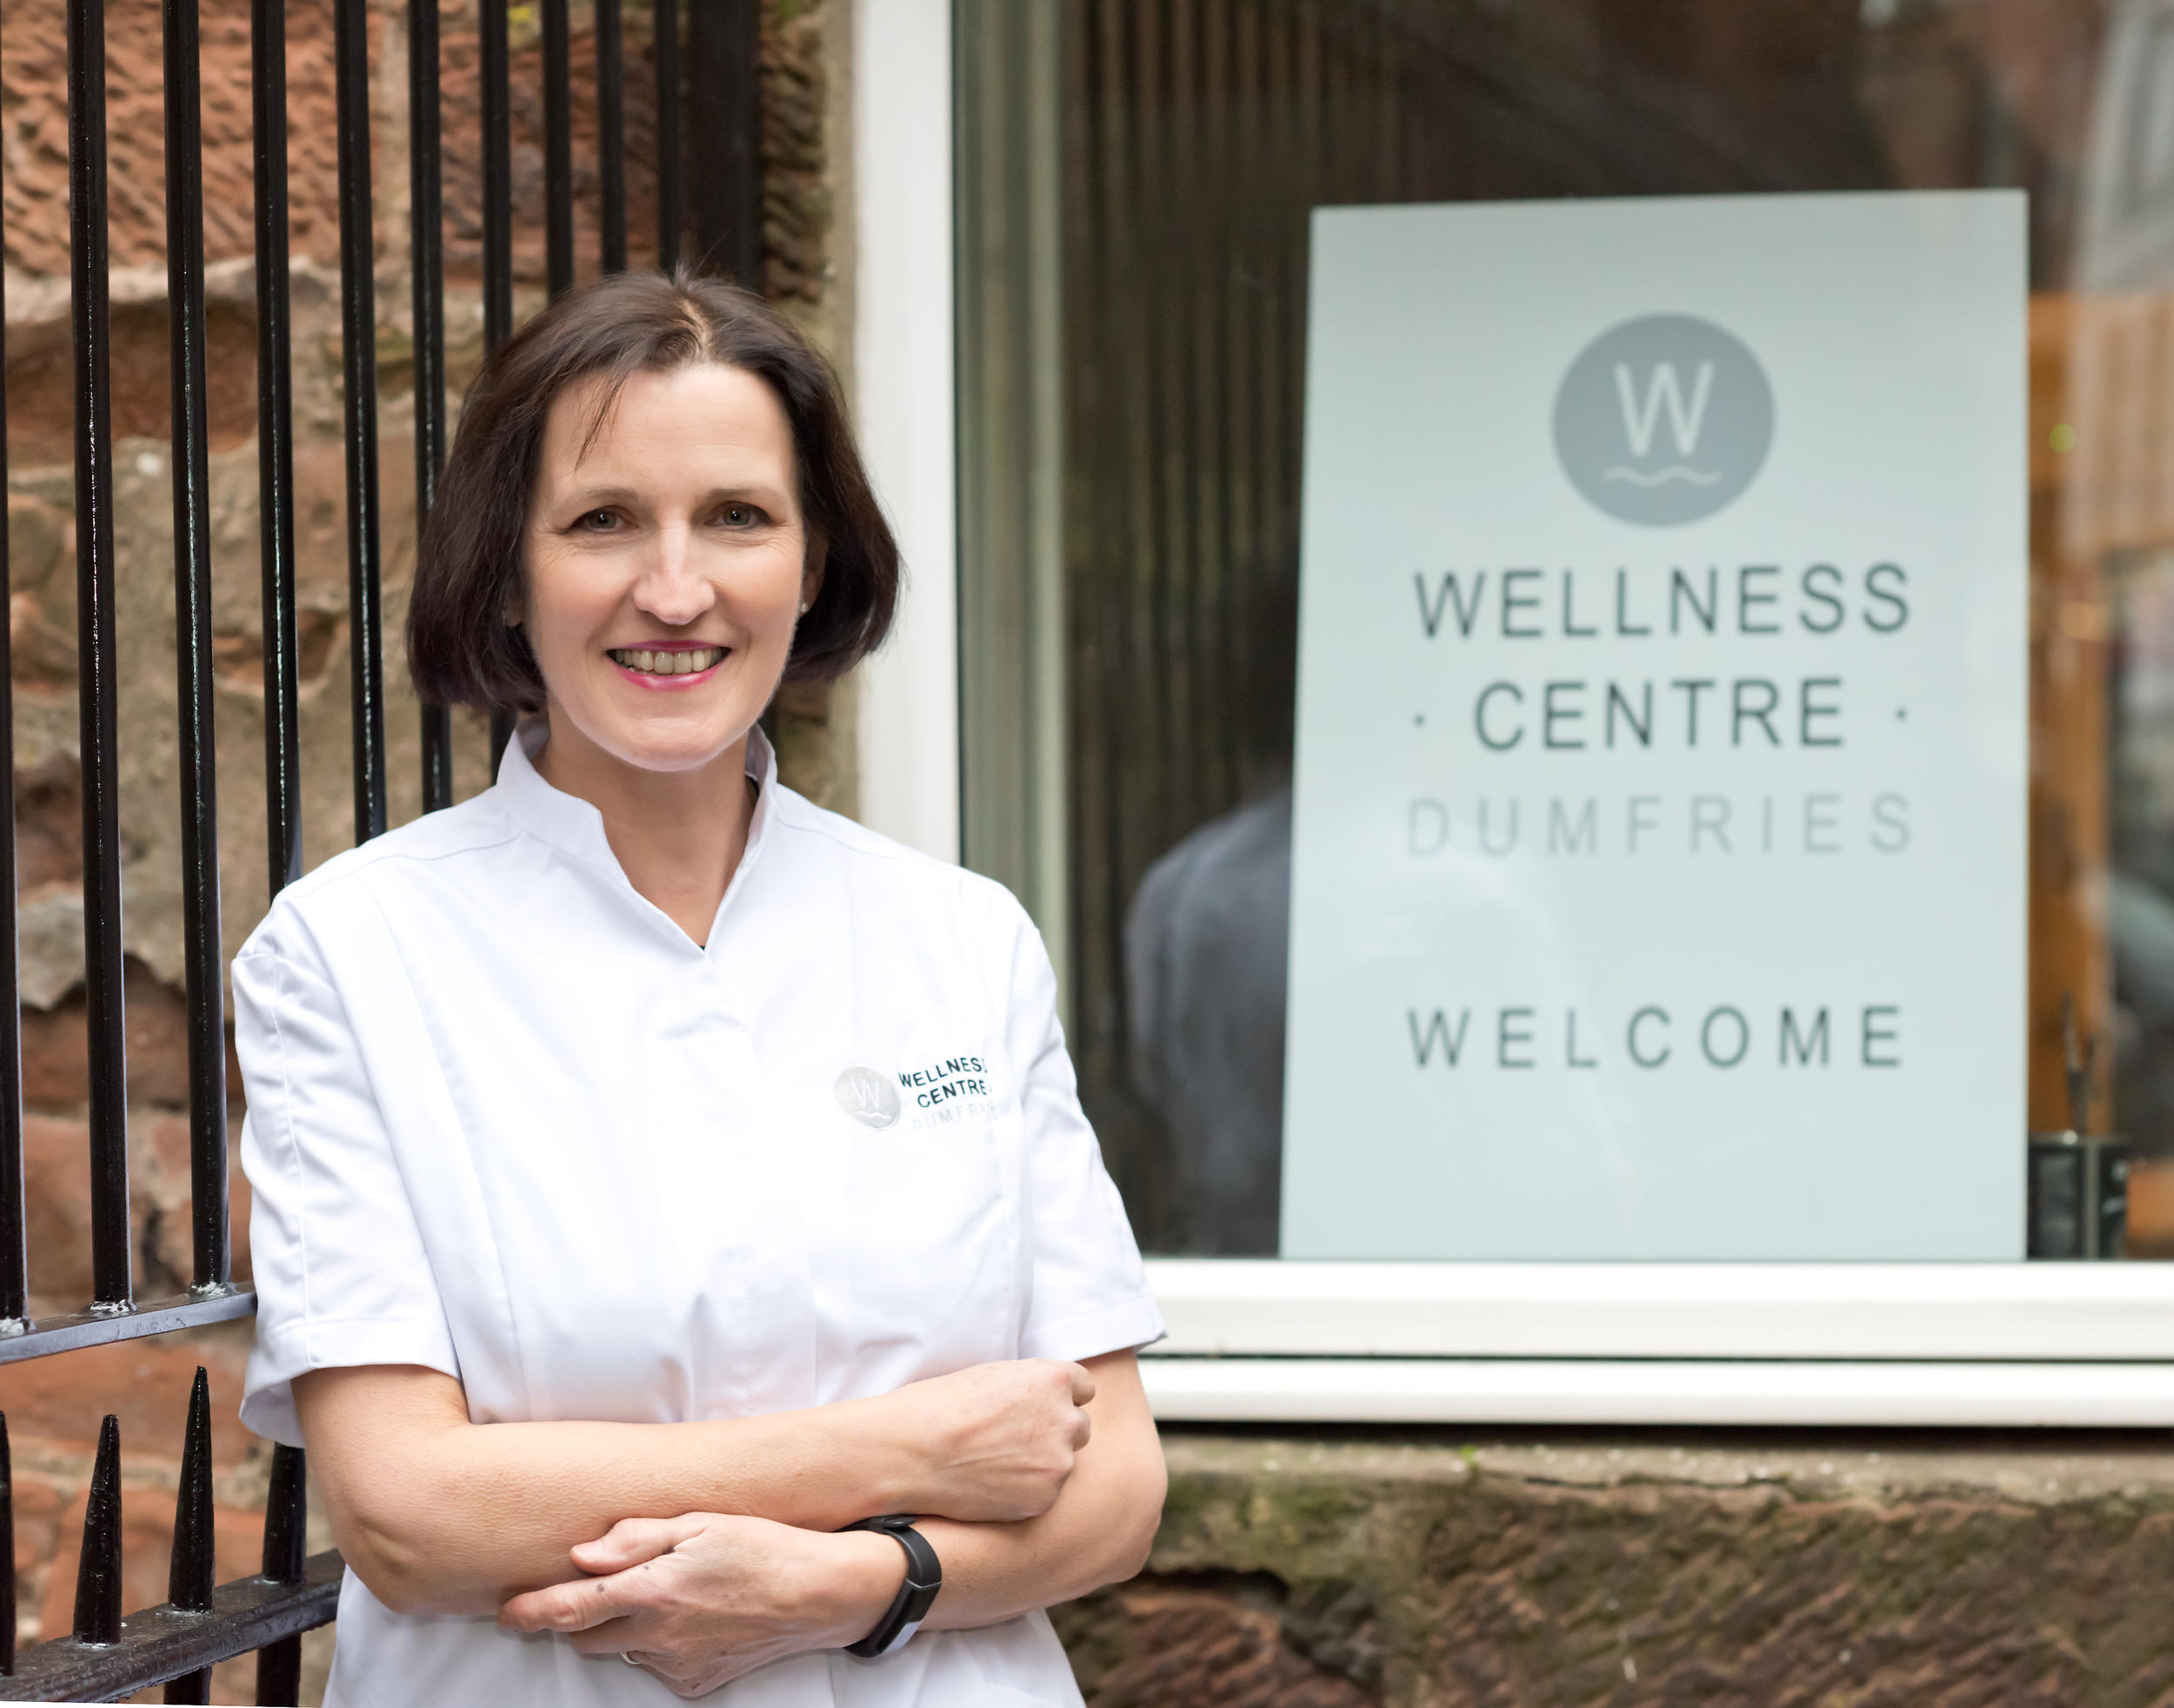 Wellness Centre Dumfries